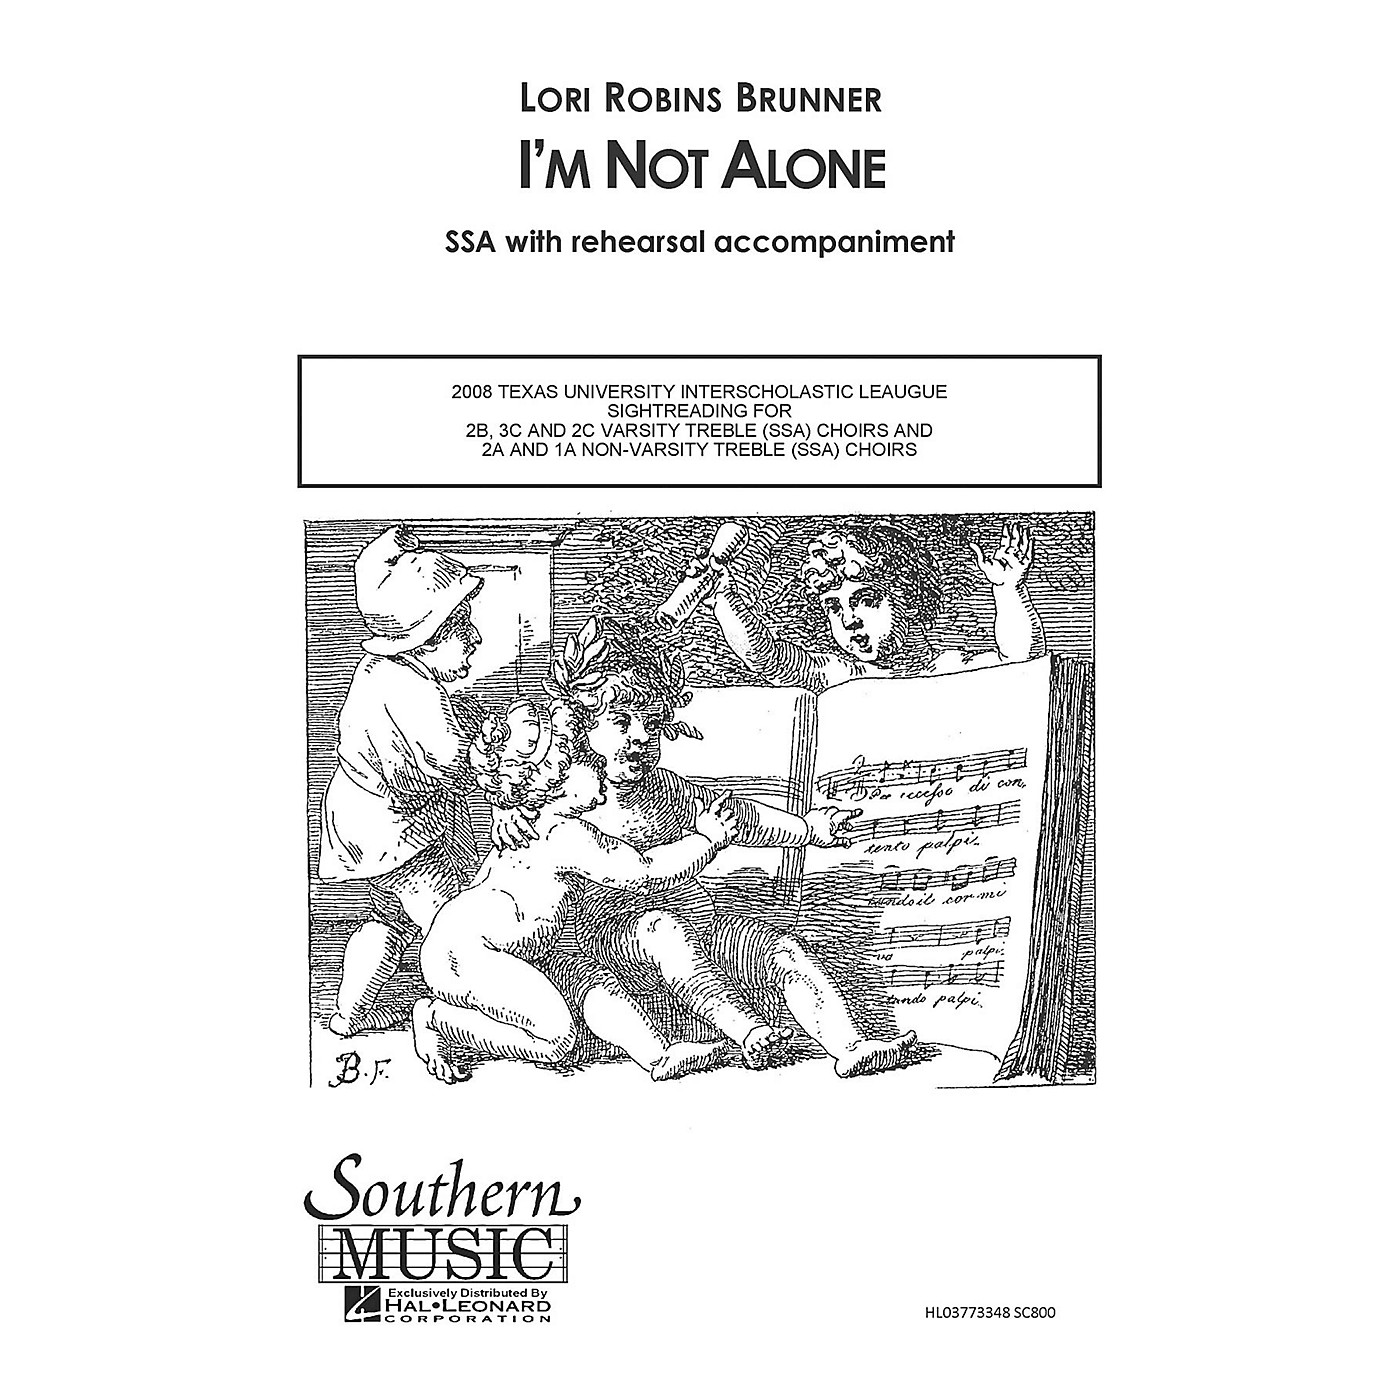 Hal Leonard I'm Not Alone (Choral Music/Octavo Sacred Ssa) SSA Composed by Brunner, Lori Robins thumbnail